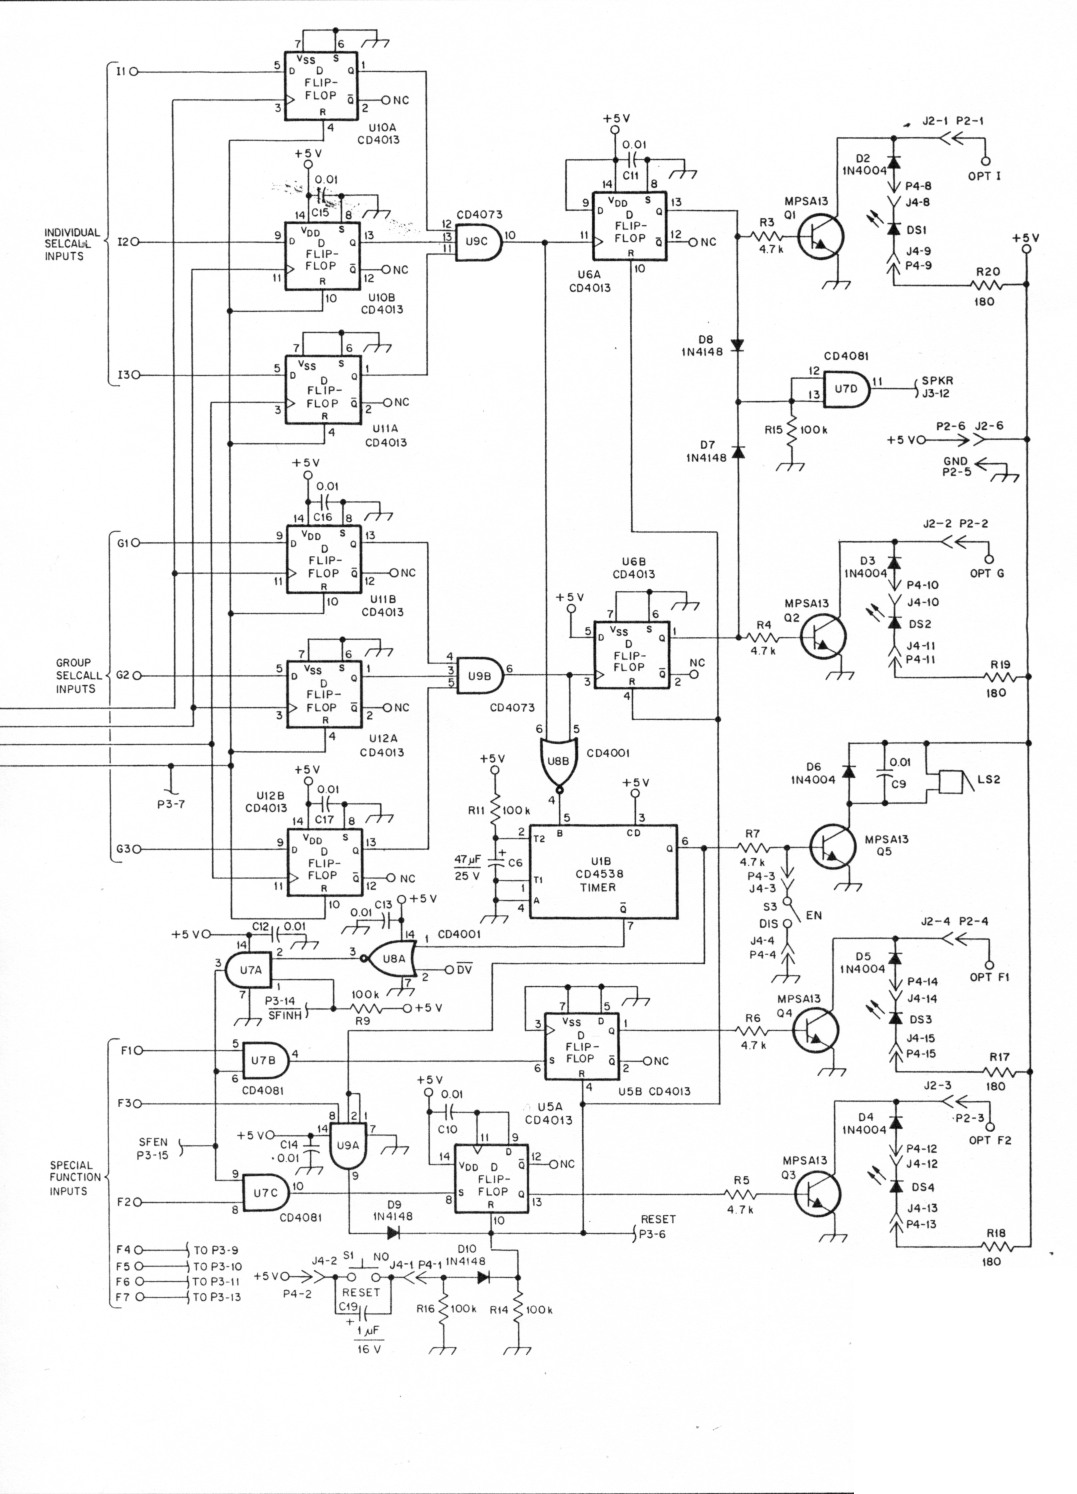 Professional Quality Dtmf Decoder And Selcall System Based Load Control Circuit Diagram Fig 1 All Resistors Are Carbon Composition 4 W 10 Tolerance Unless Otherwise Noted Components Used In This Project Available From A